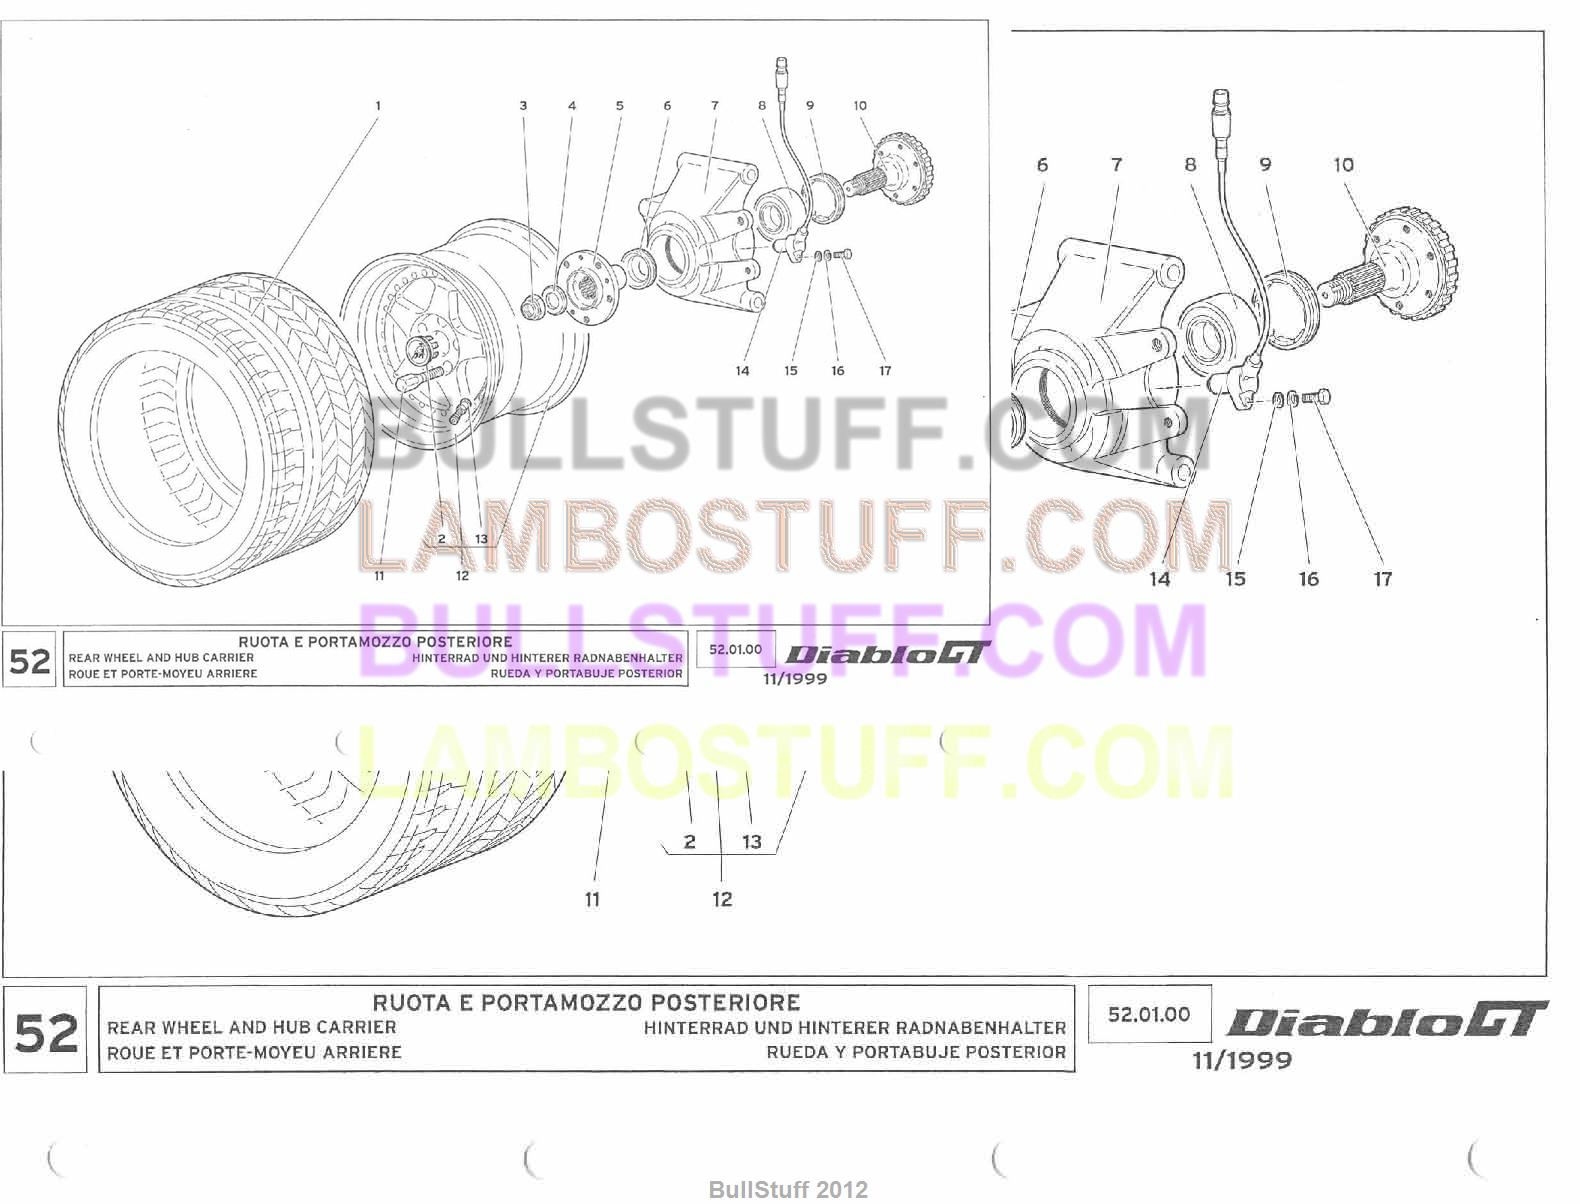 1999 lamborghini diablo gt usa rear wheel and hub carrier (52 01 00)